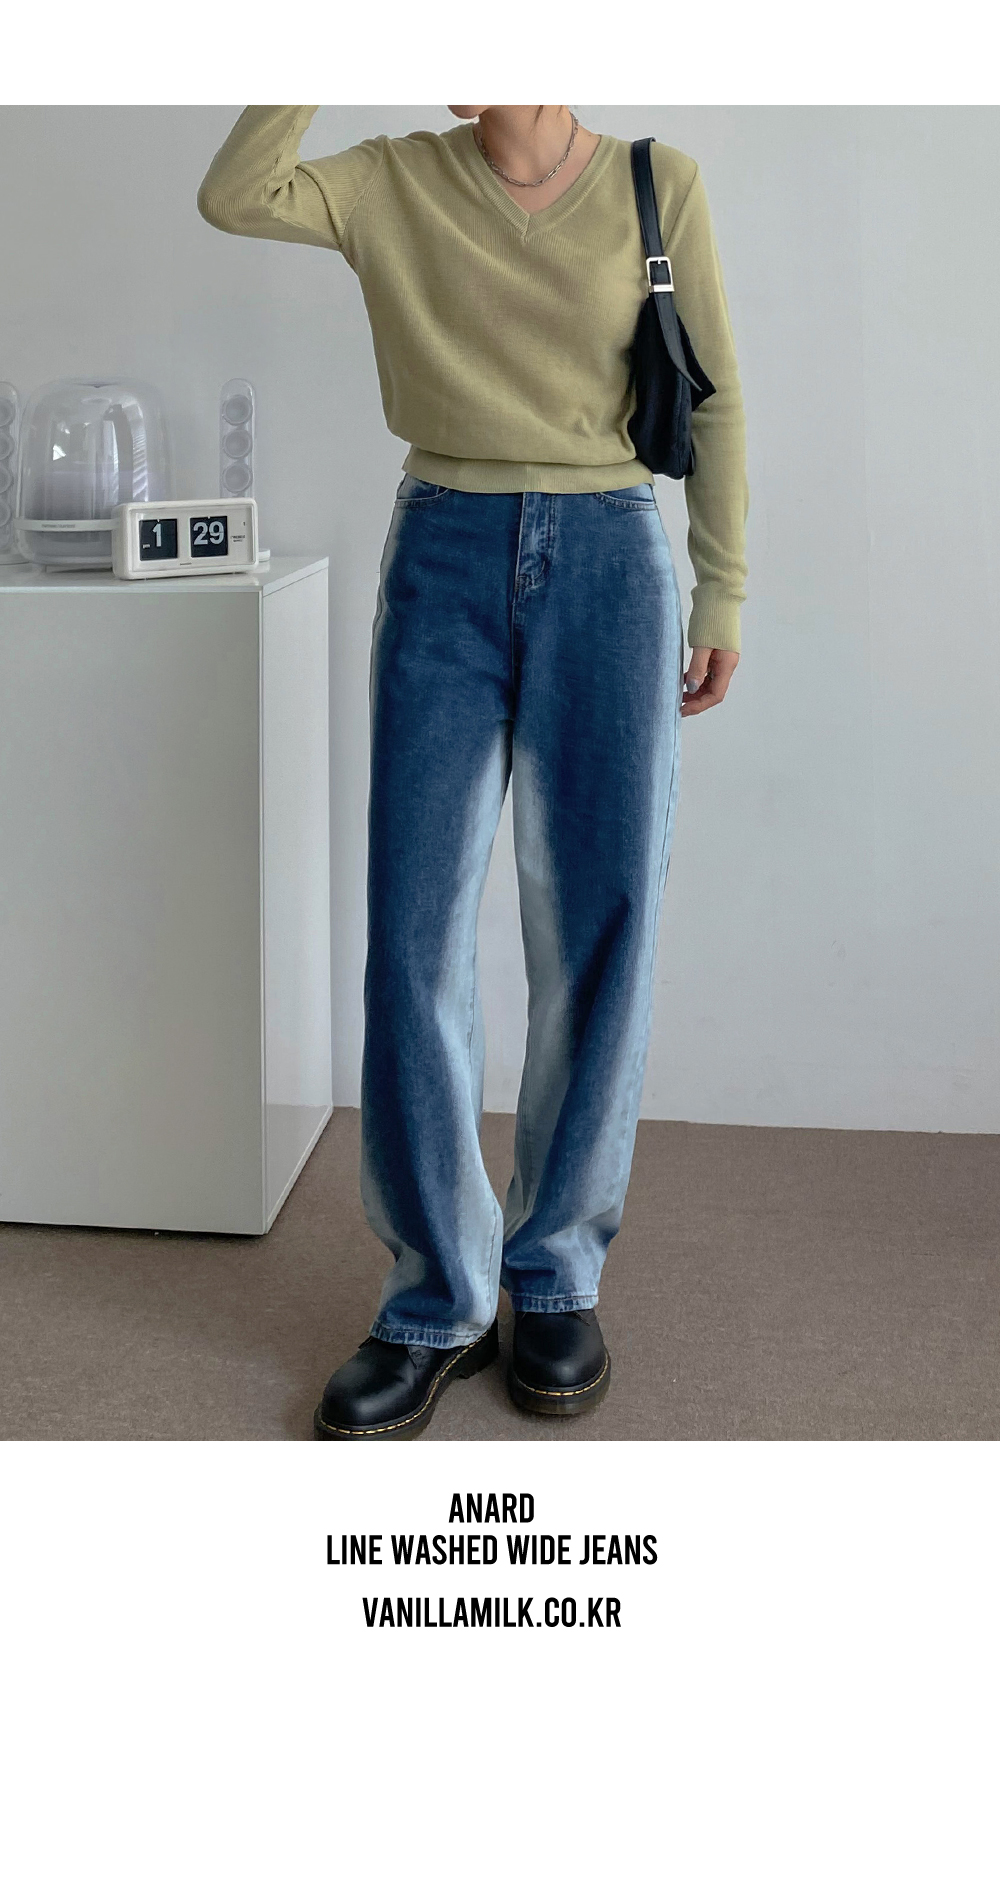 And Ard Line Faded Wide Denim Pants